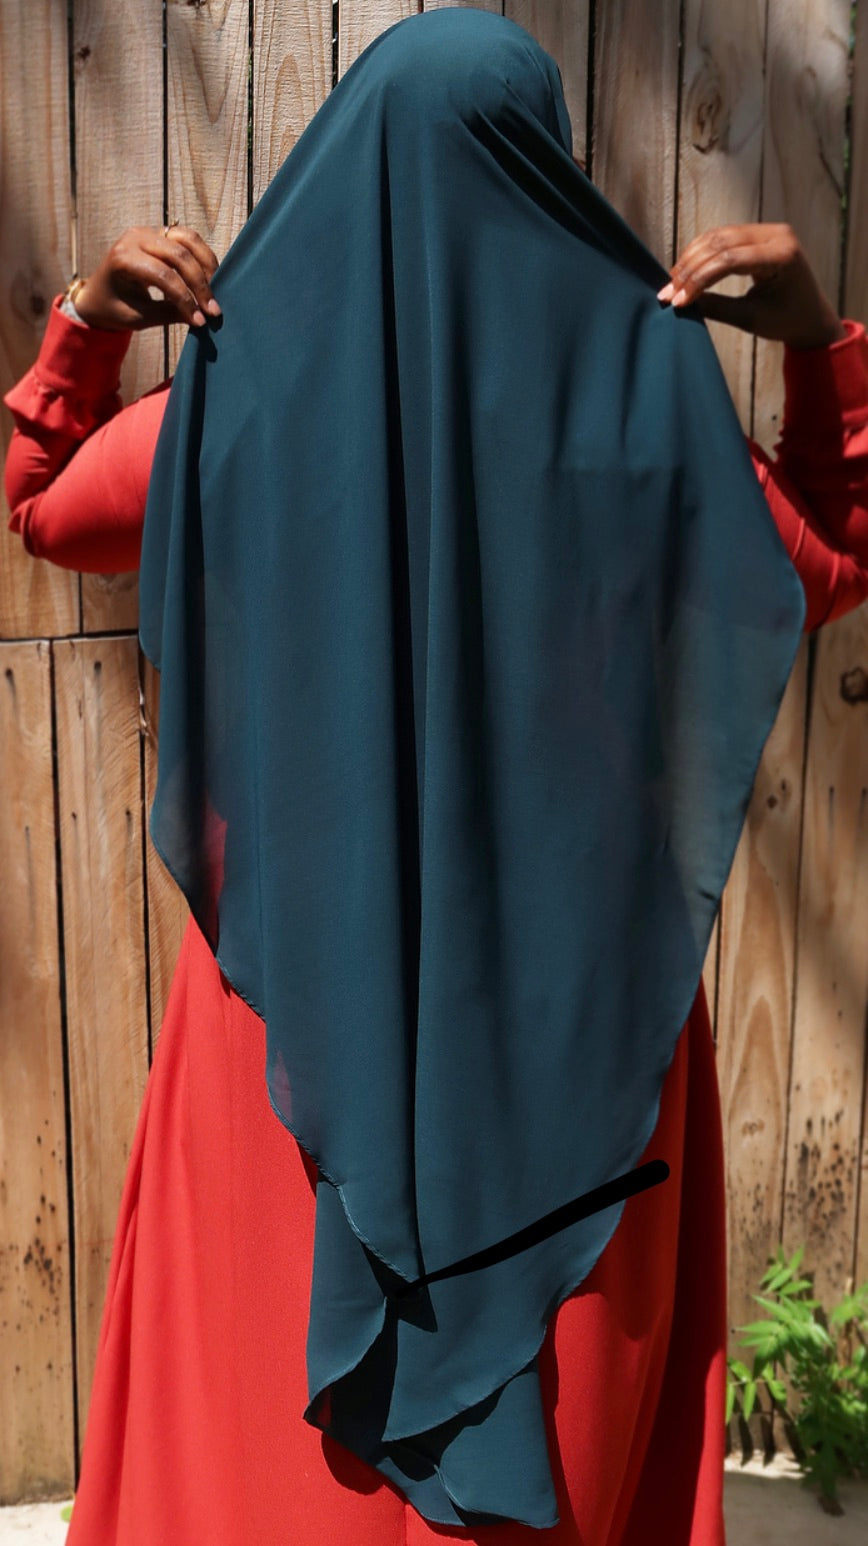 Double Layer Rapunzel Niqab In Deep Teal